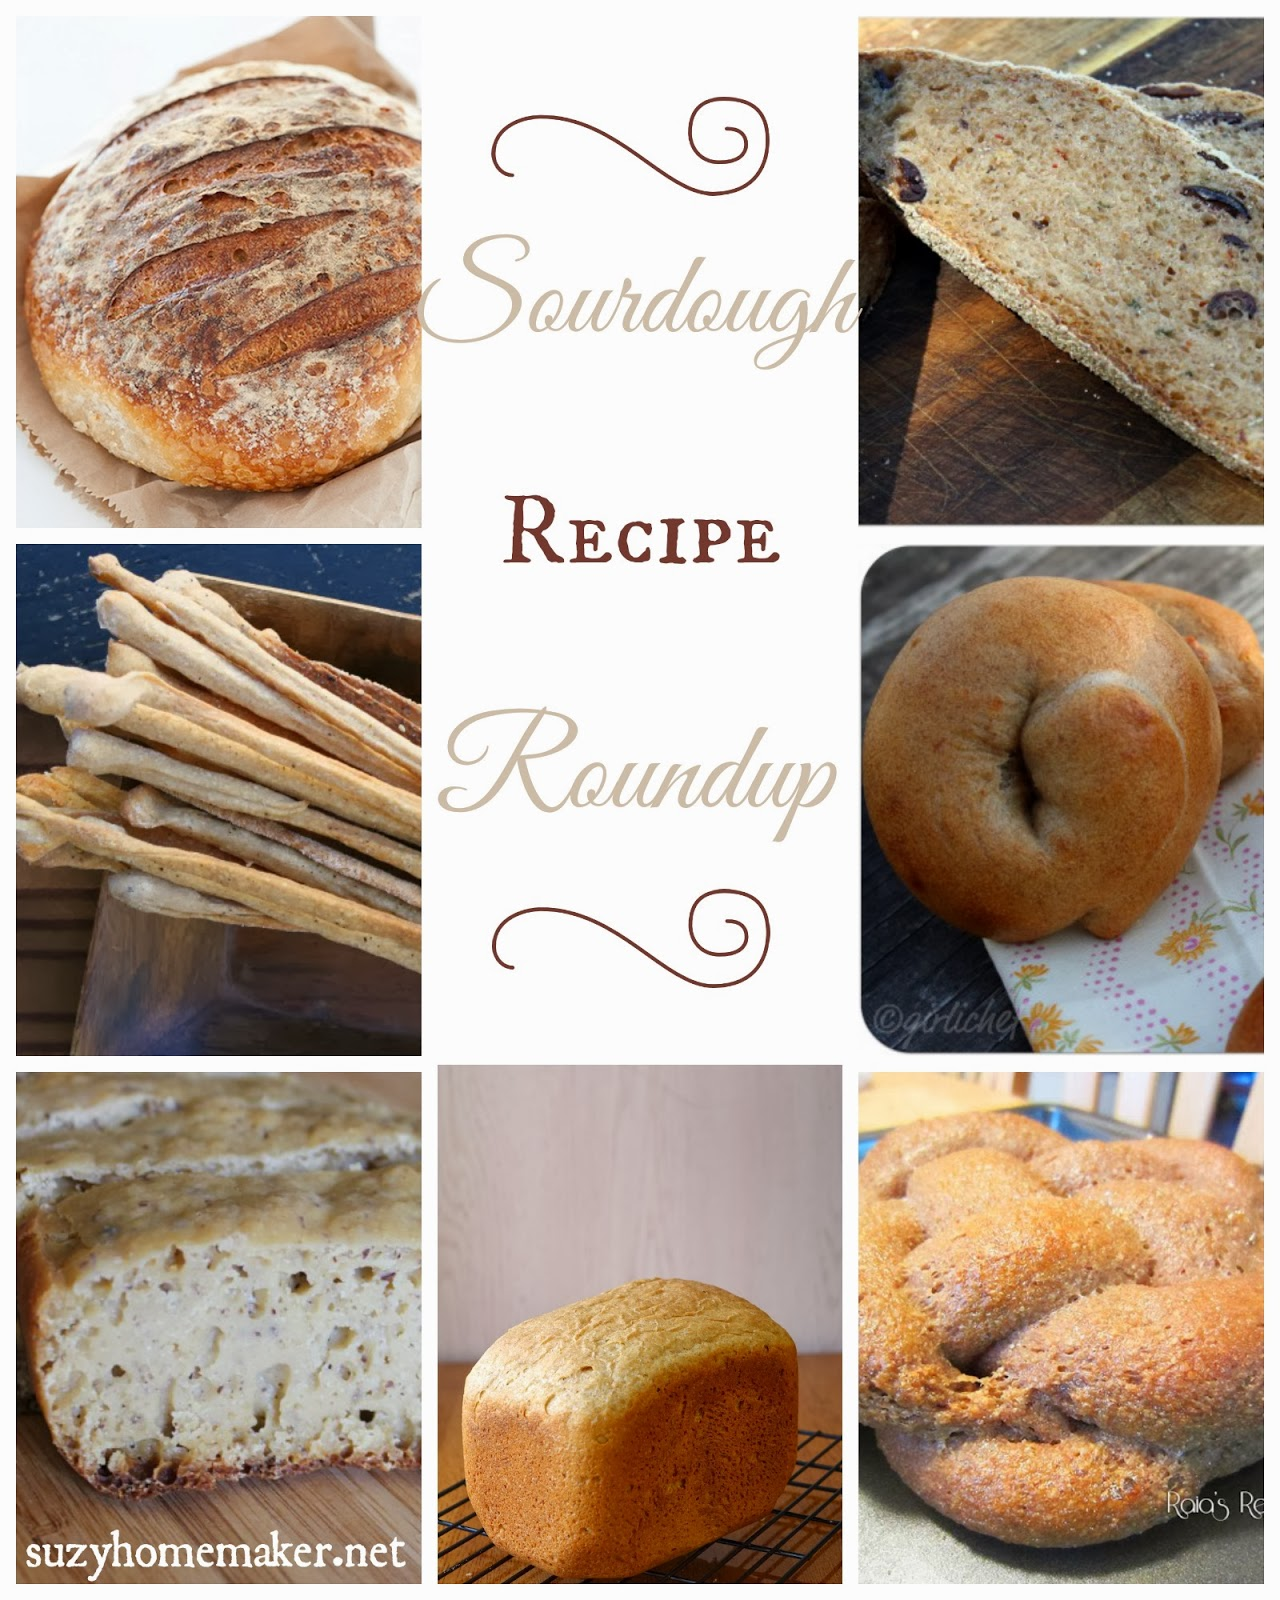 sourdough recipe roundup | suzyhomemaker.net